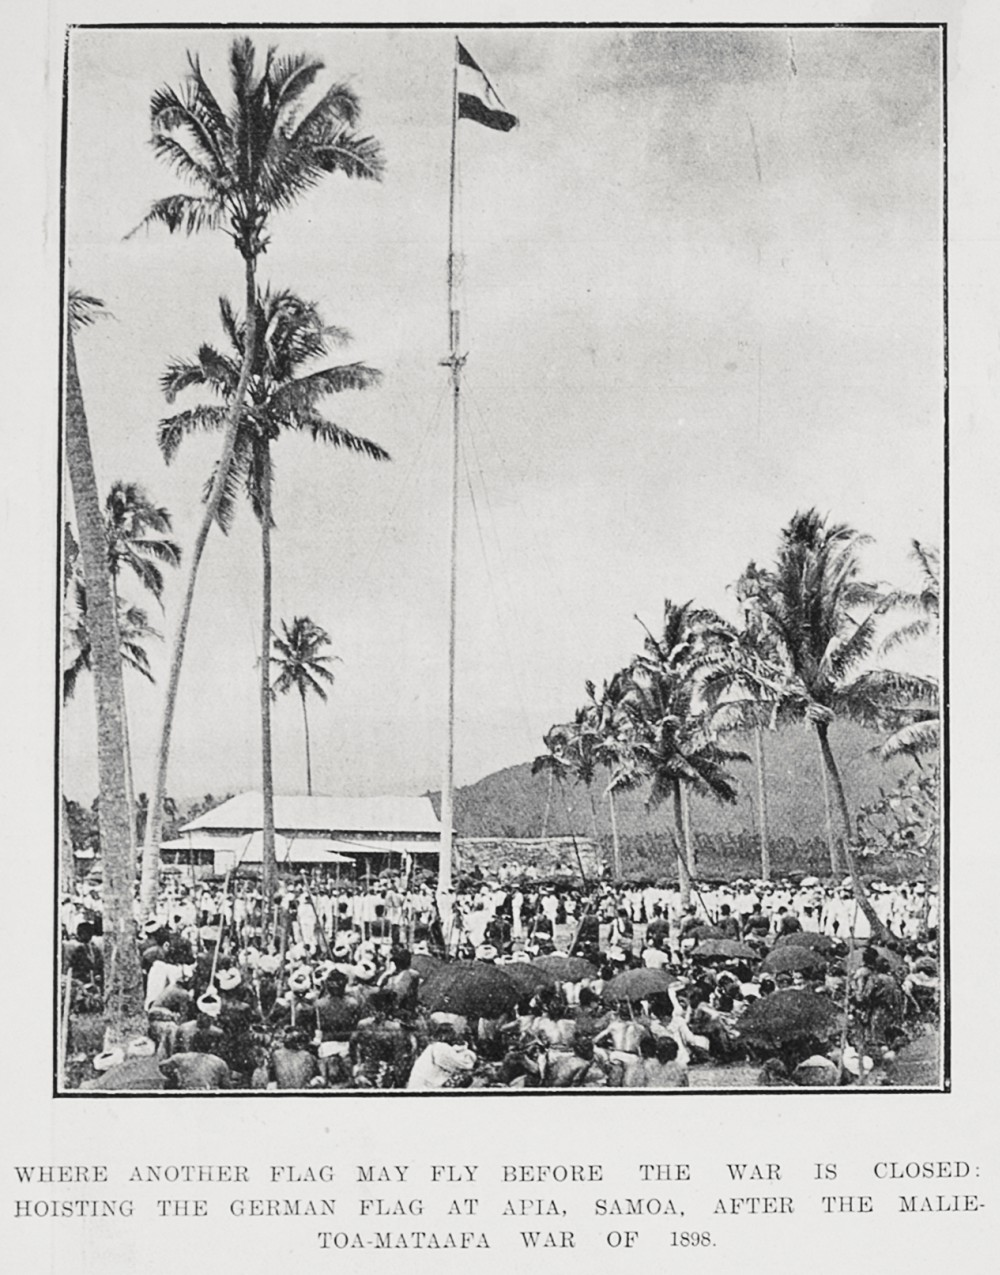 Where another flag may fly before the war is closed: Hoisting the German flag at Apia, Samoa, after the Malietoa-Mata'afa war of 1898. - Auckland Libraries